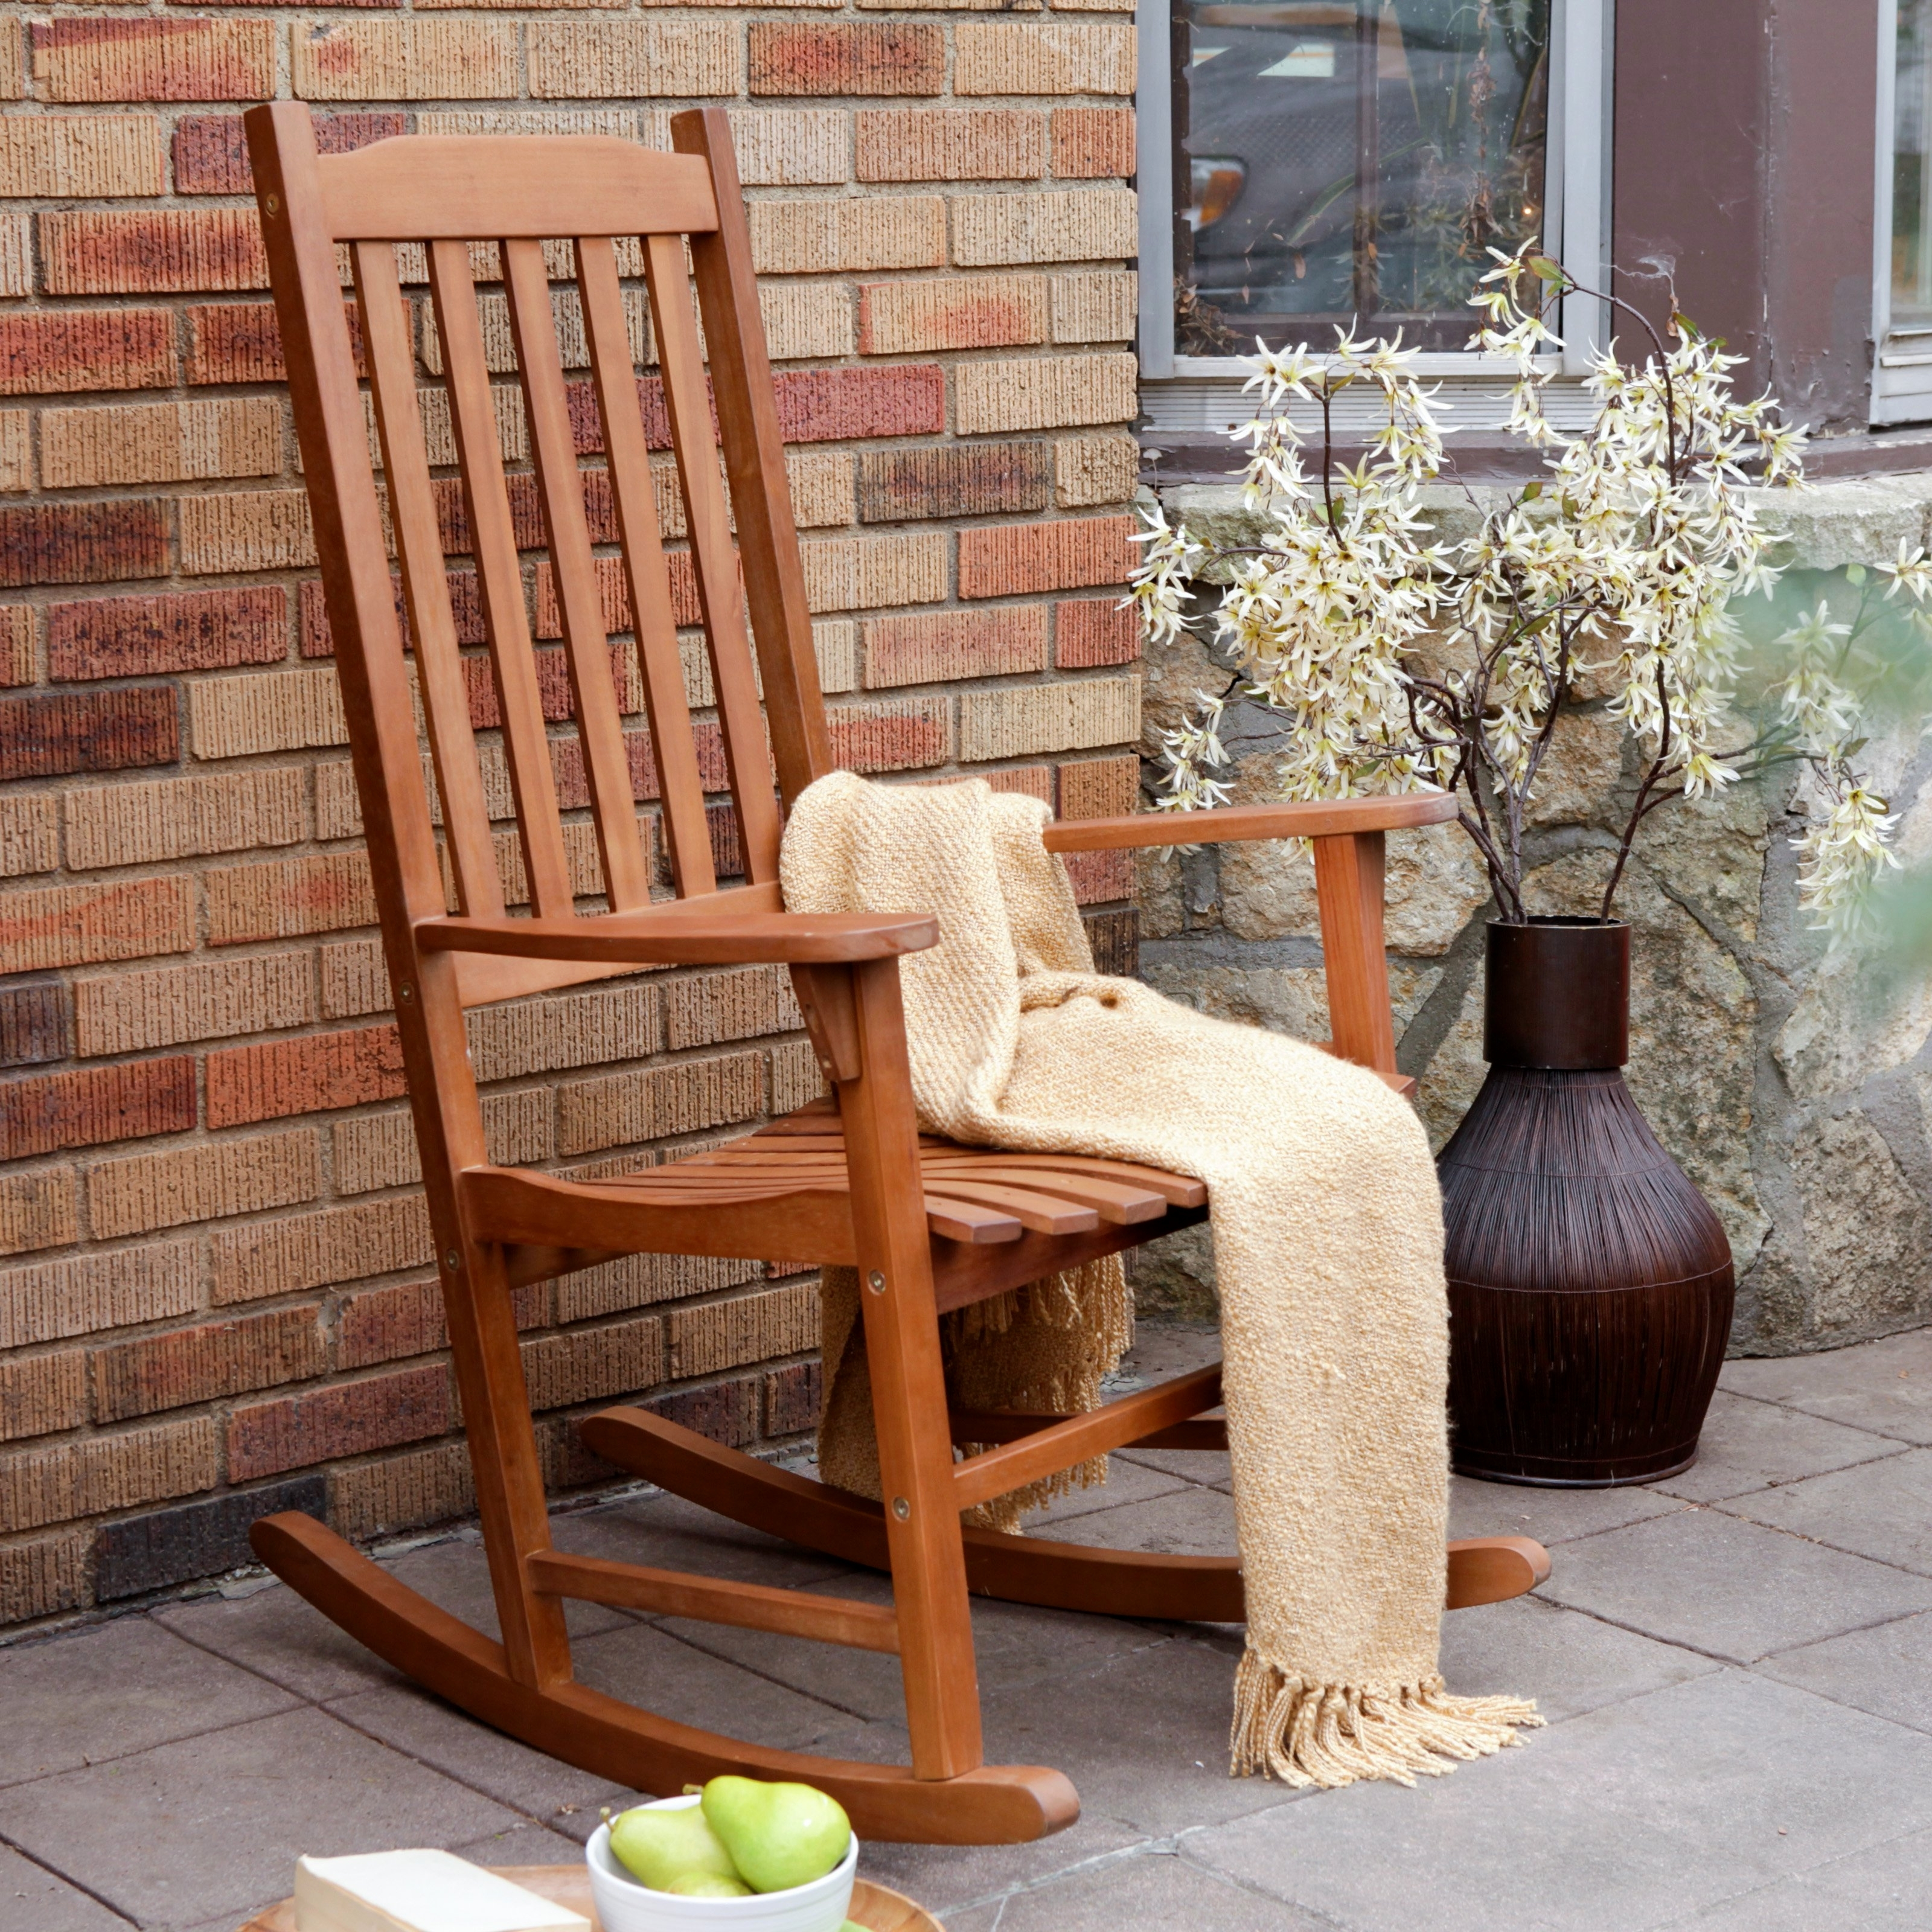 2018 Wooden Porch Rocking Chairs Patio Size Of Furniture Homemetal With Regard To Indoor Wicker Rocking Chairs (View 1 of 15)